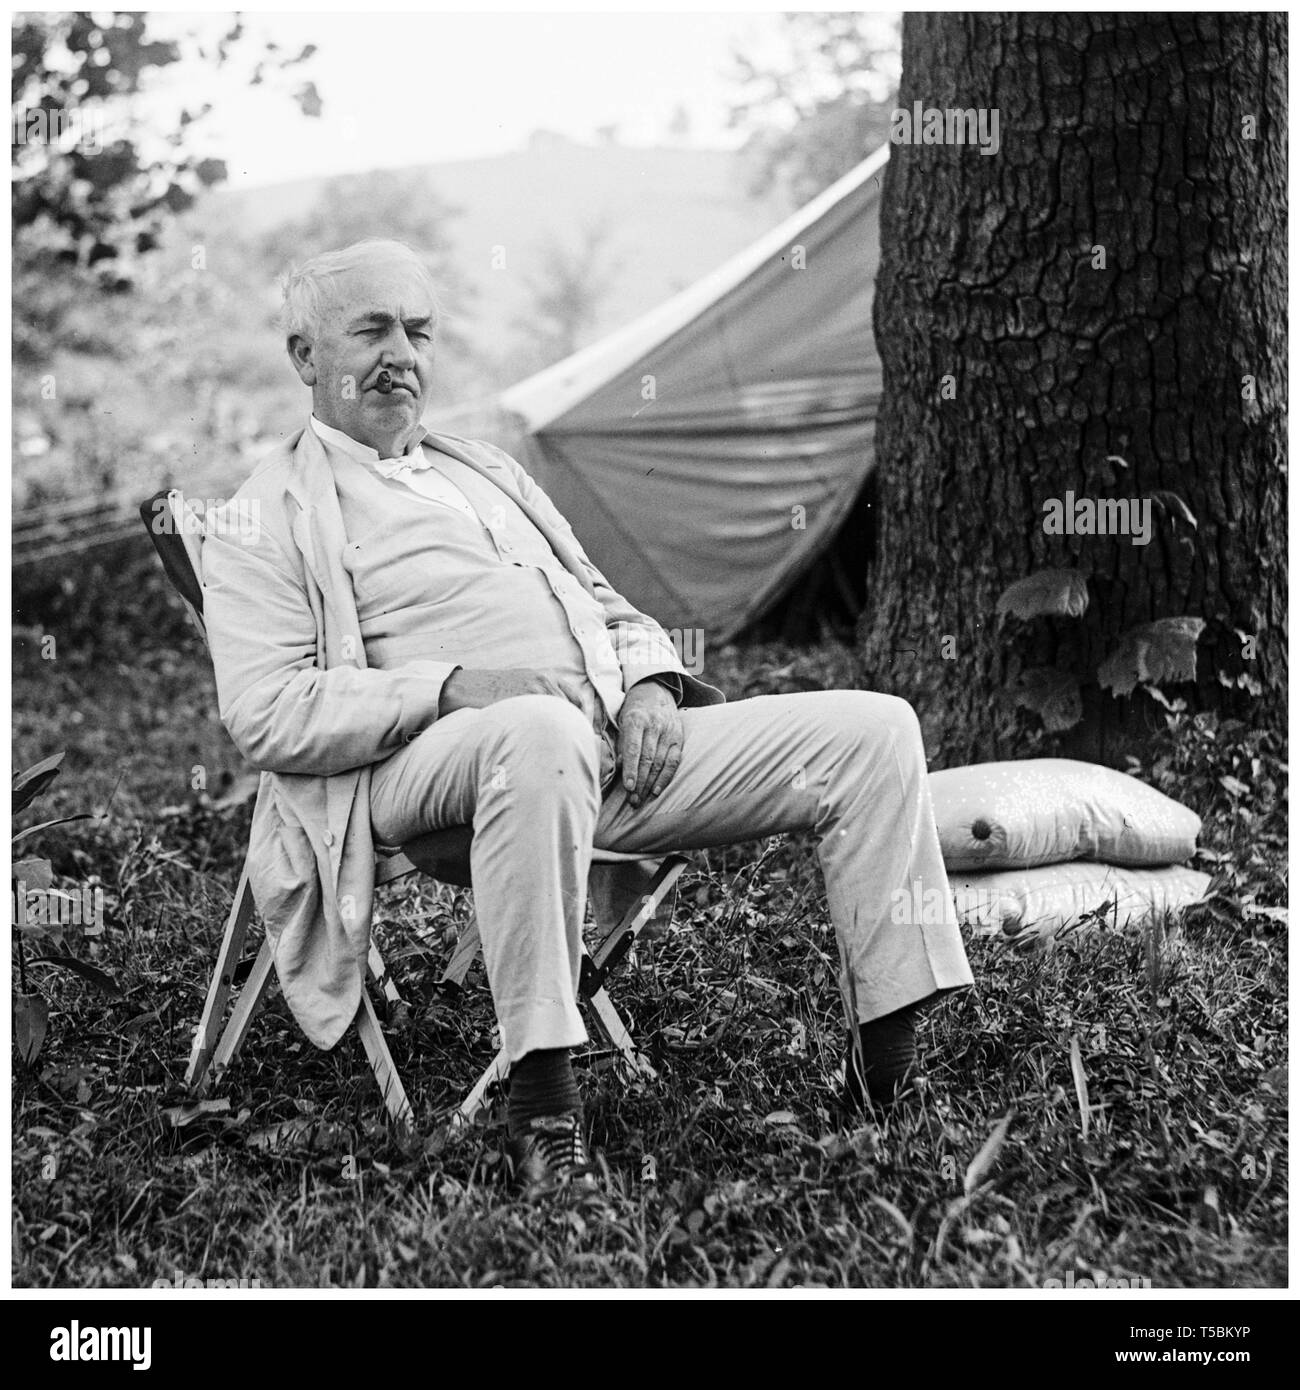 Thomas Edison (1847-1931), portrait relaxing in a chair outdoors, National Photo Company, 1921 Stock Photo